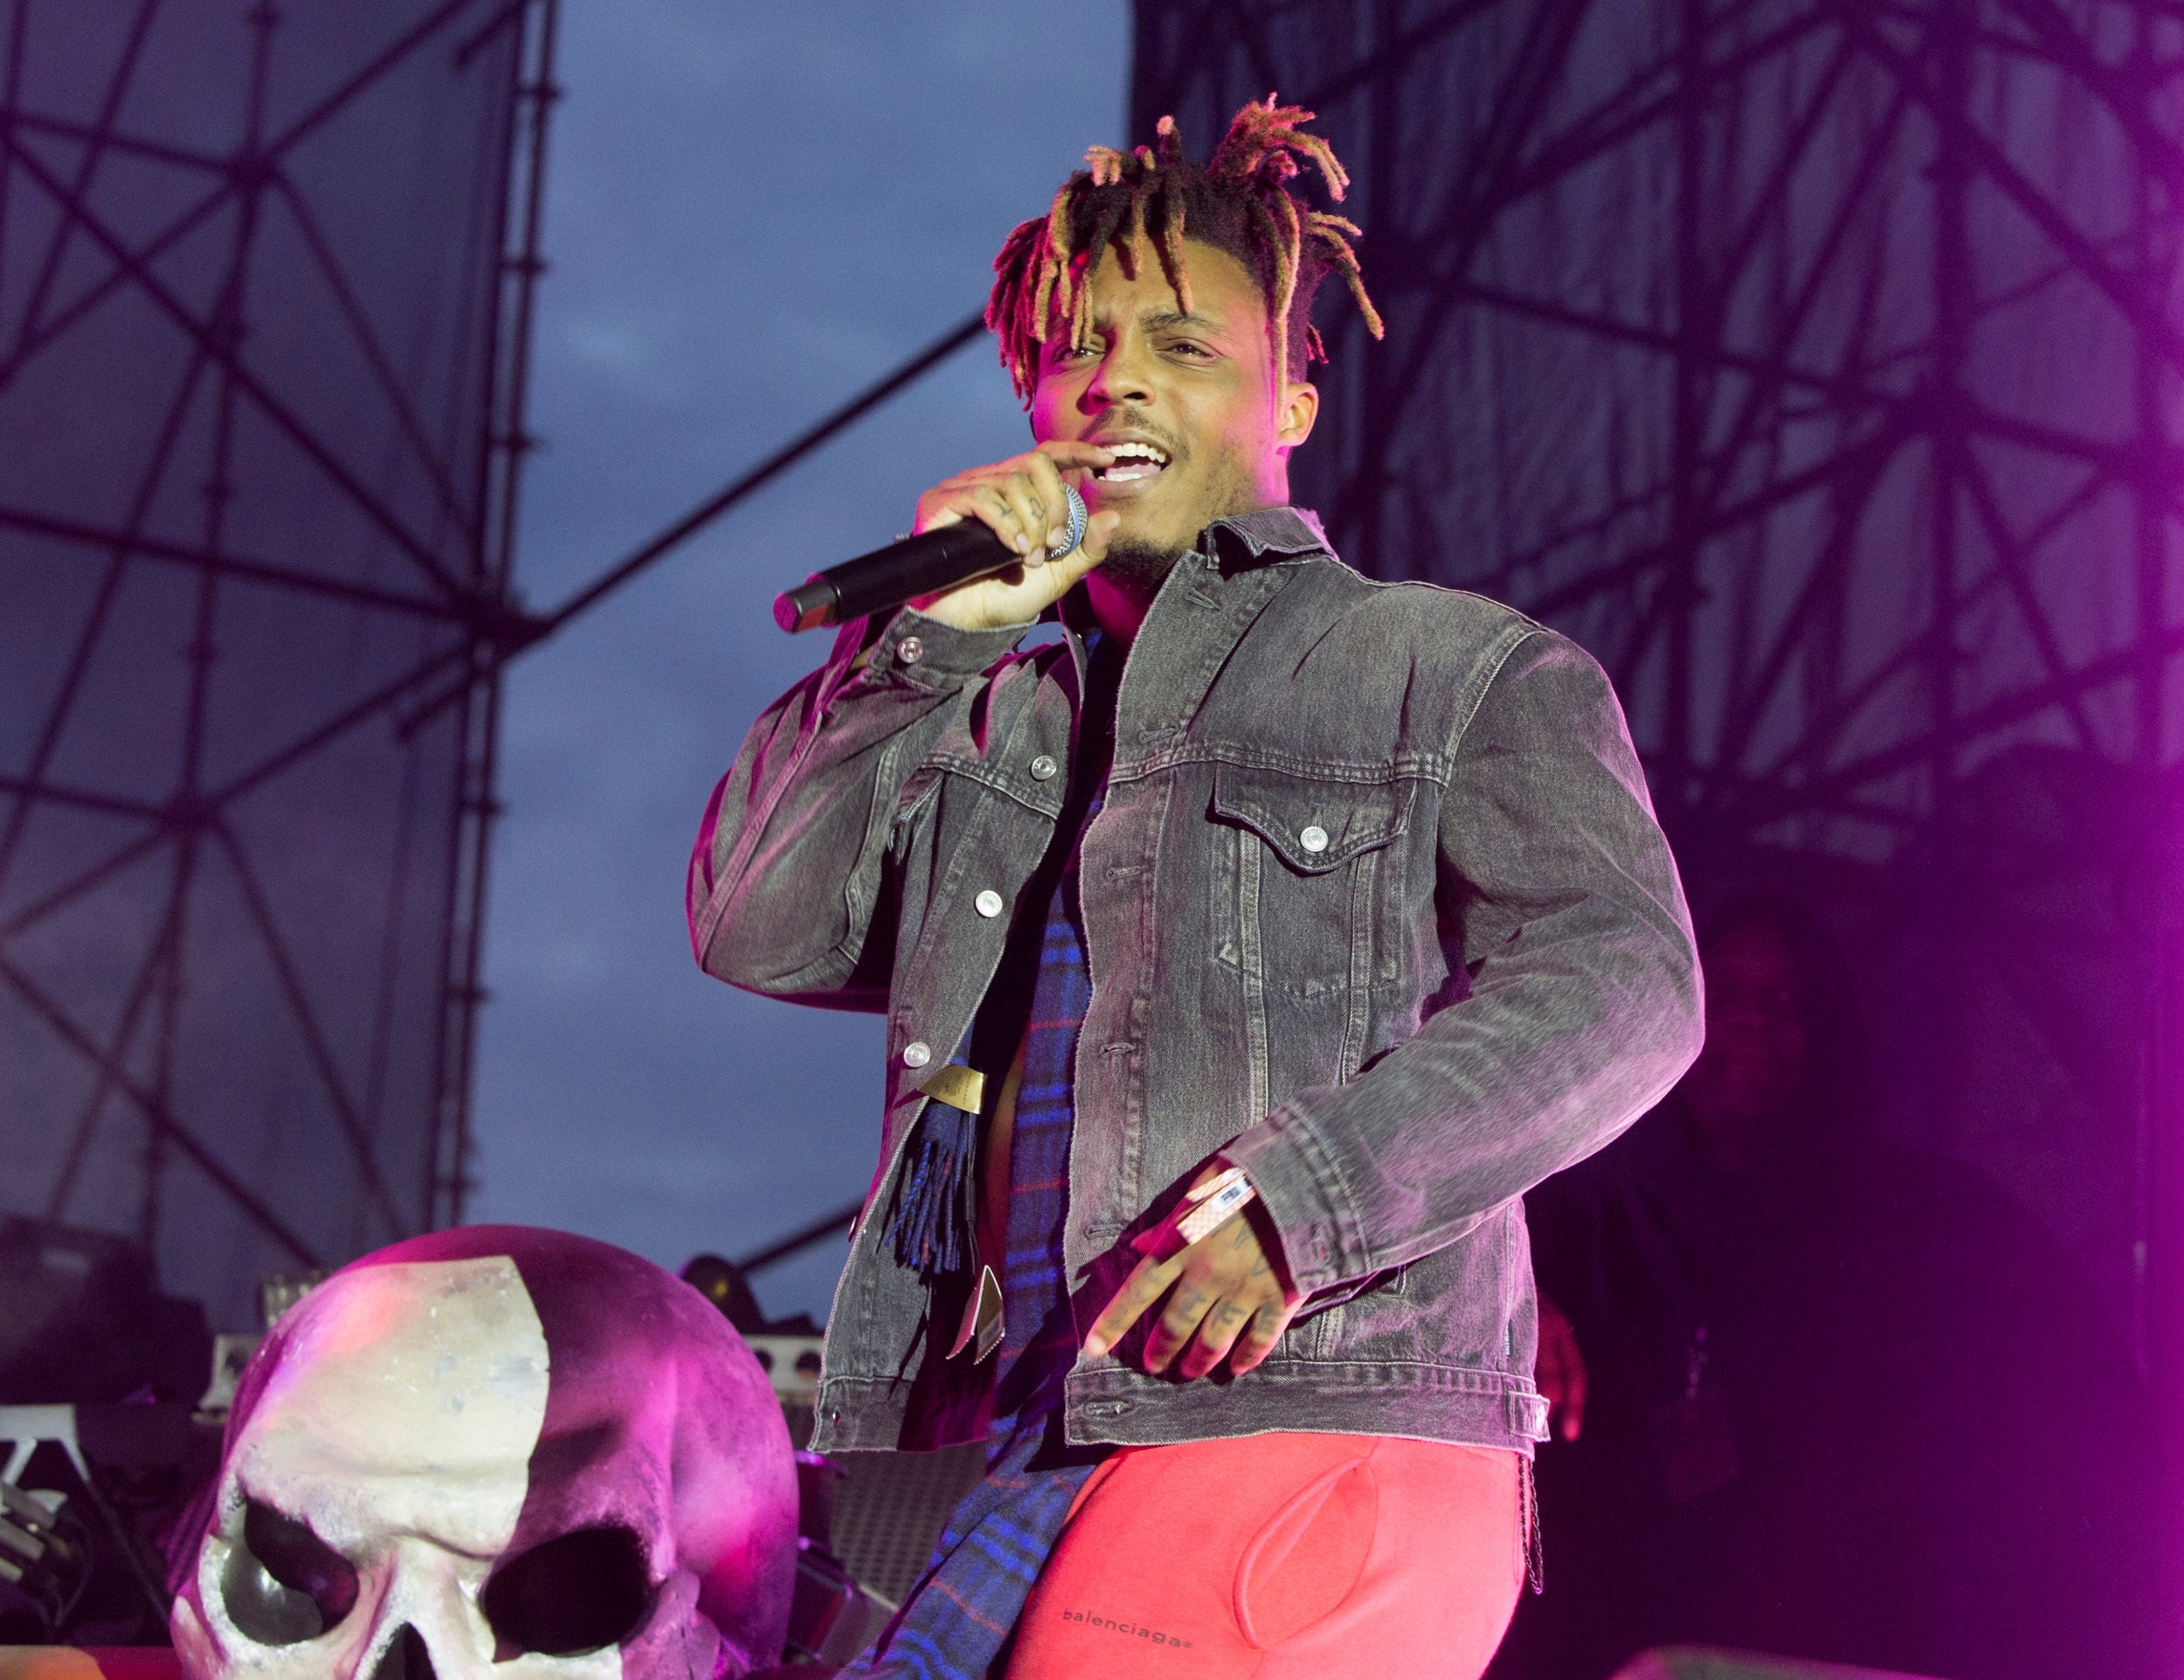 Rapper Juice Wrld was given opioid antidote by federal agent before he died, police say